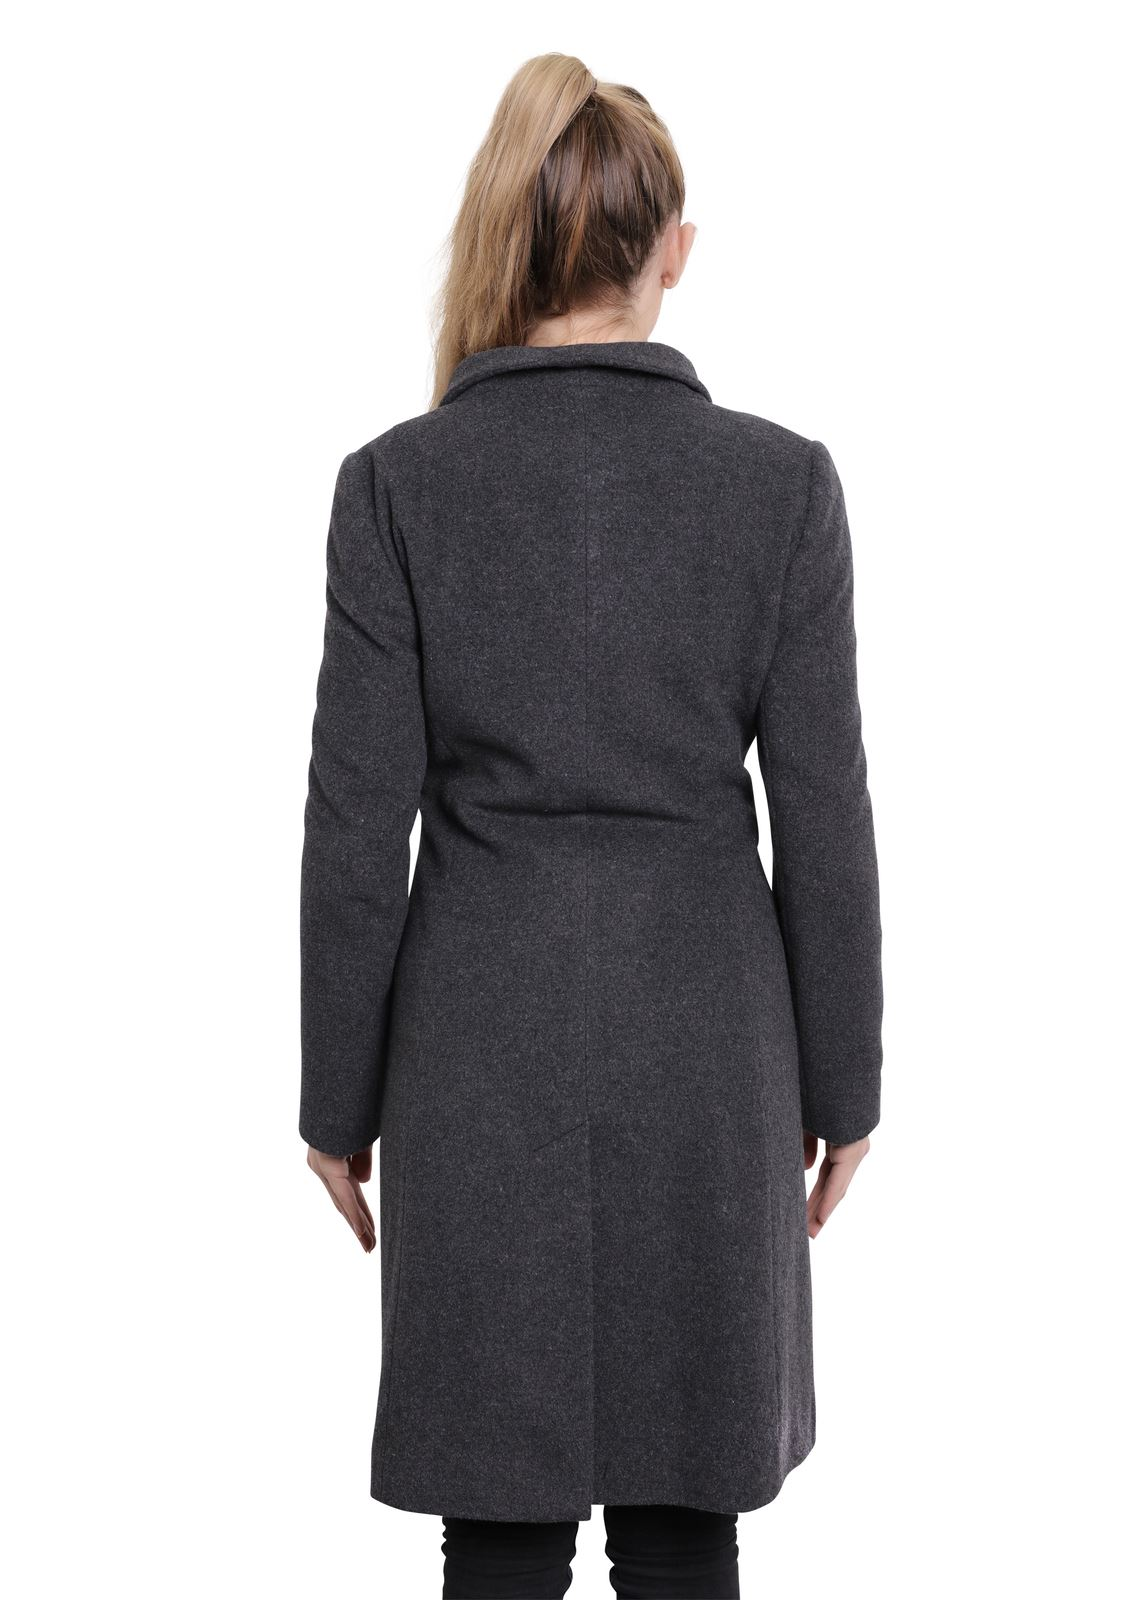 De-La-Creme-Womens-Funnel-Neck-Wool-amp-Cashmere-Blend-Keep-It-Simple-Coat thumbnail 14